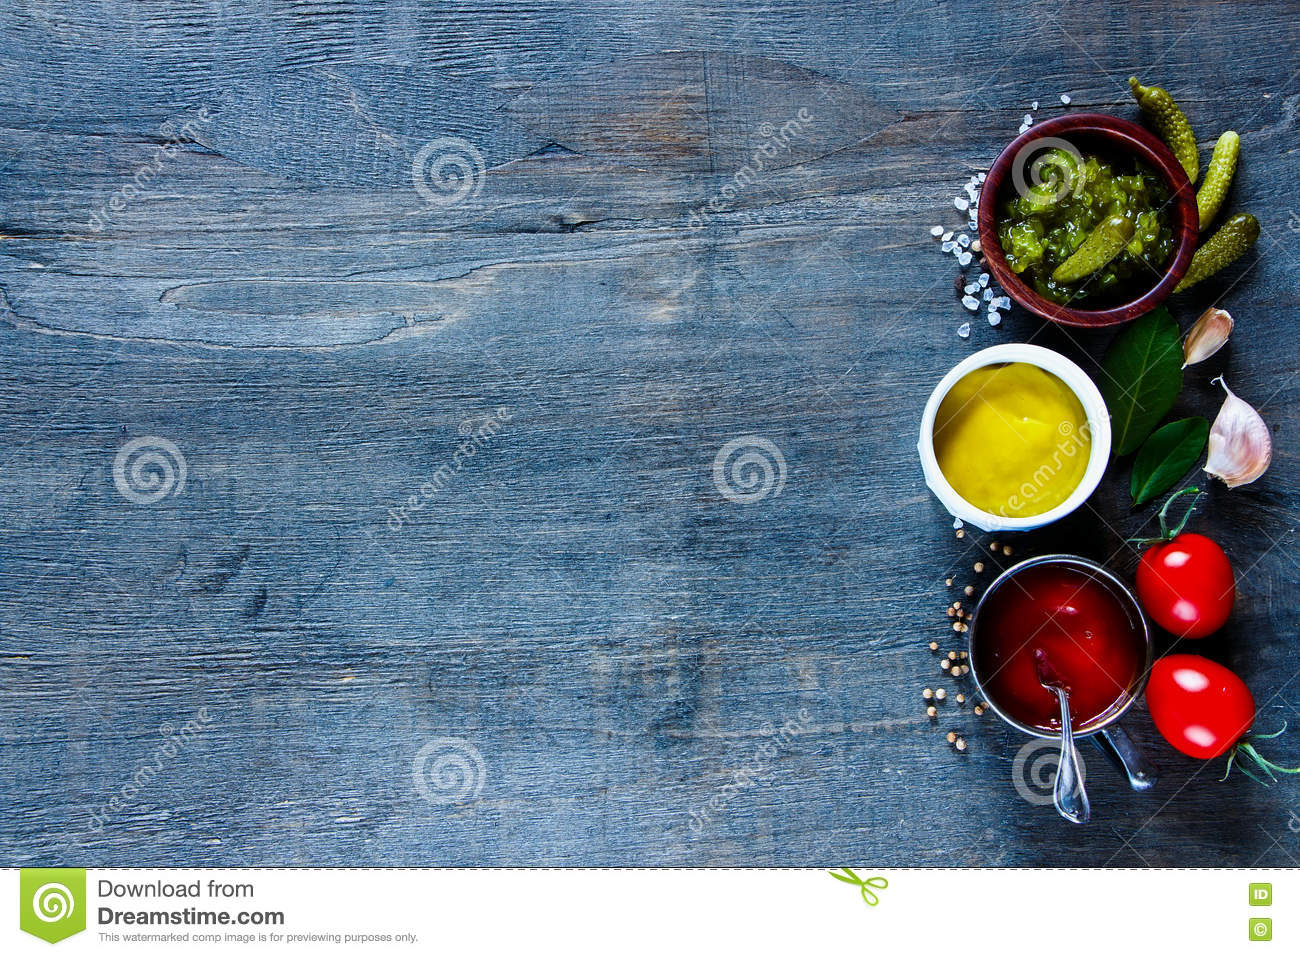 Sauces With Herbs And Spices Stock Image - Image of abstract ...